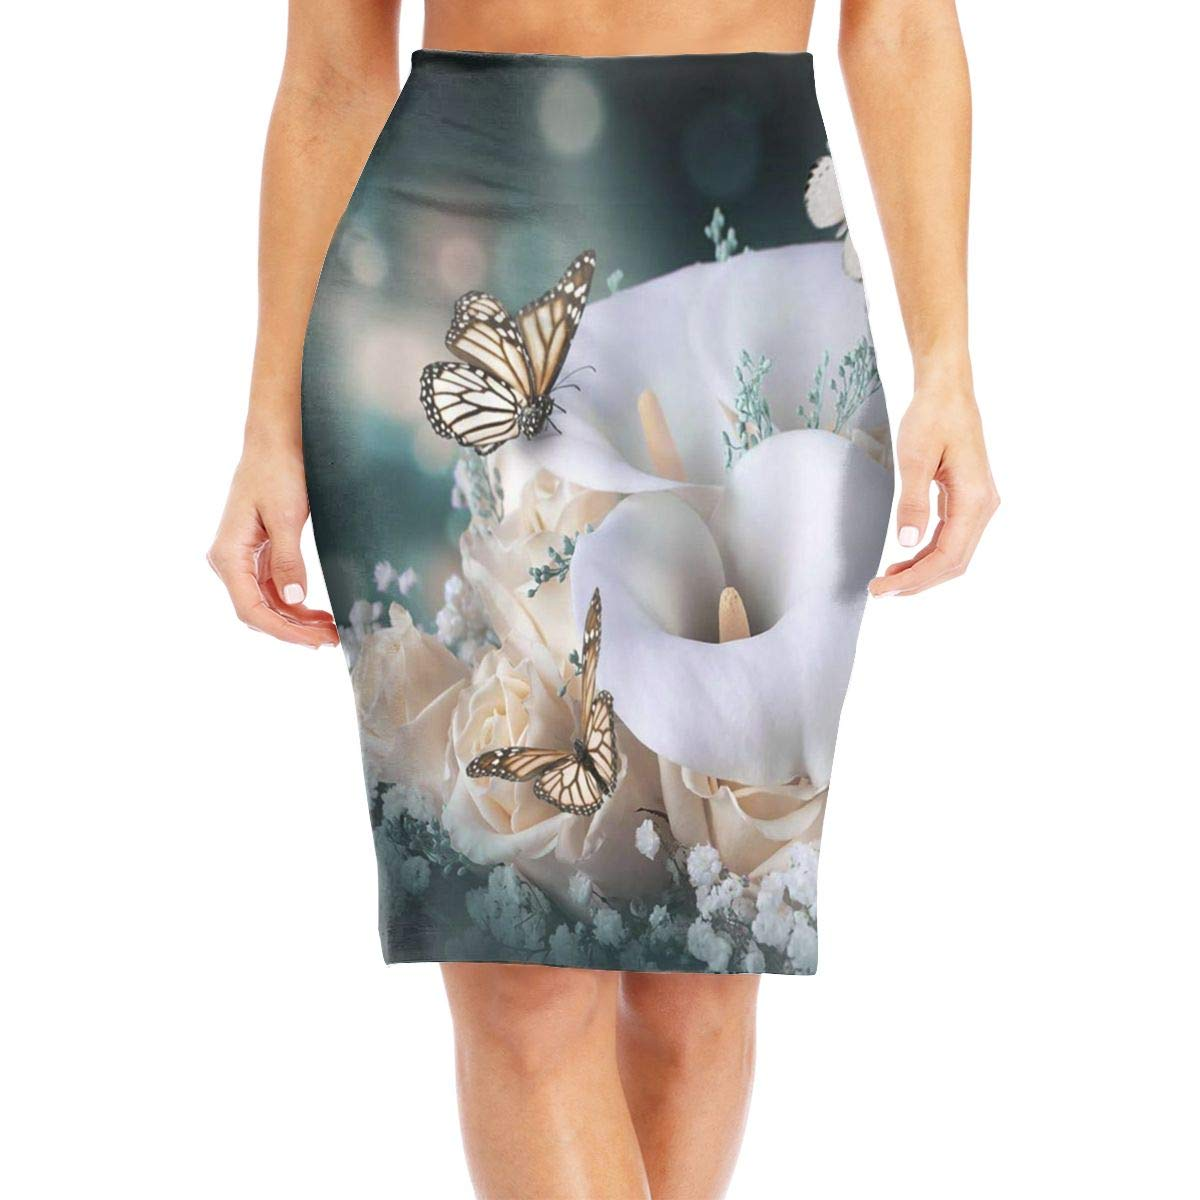 Common Callalily Butterfly Women's Slim Skirt Elegant Knee Length Pencil Skirts White by CAWHJDW